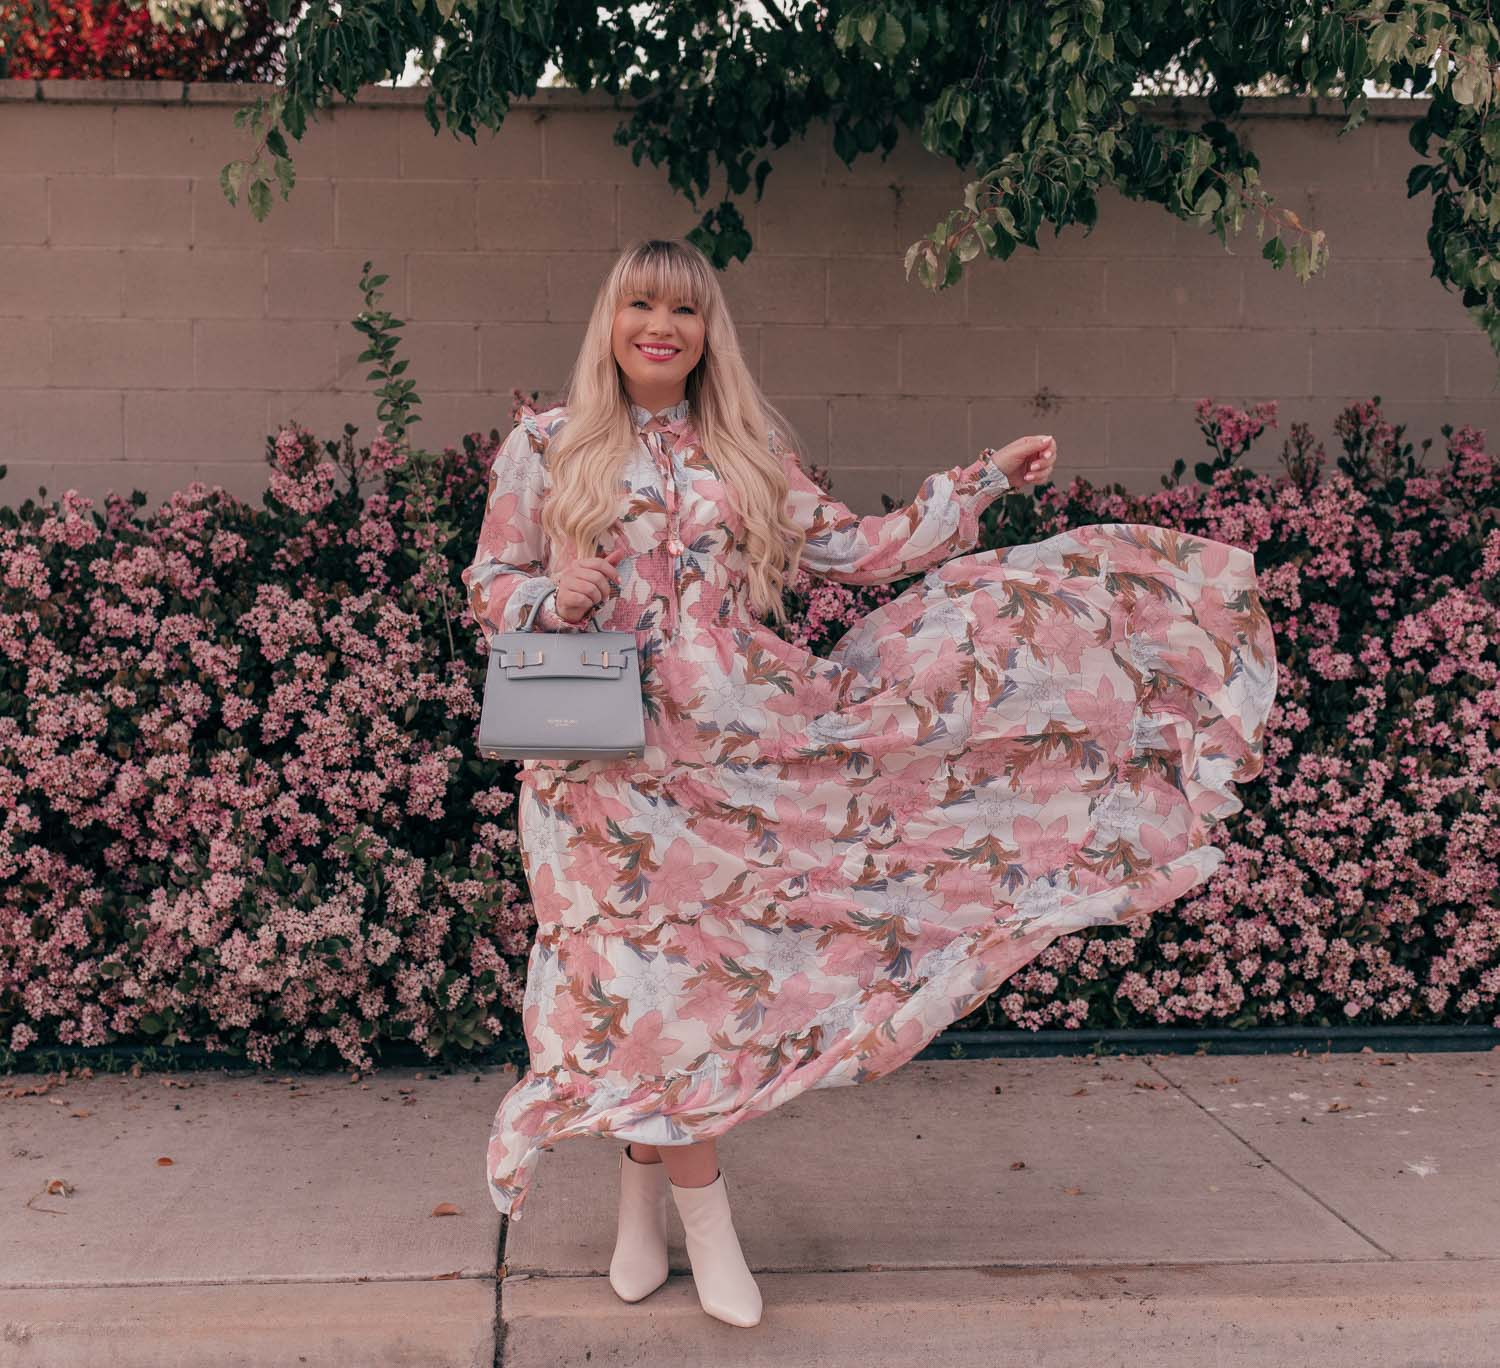 Feminine Fashion Blogger Elizabeth Hugen of Lizzie in Lace styles a Floral Petite Maxi Dress with white boots for spring